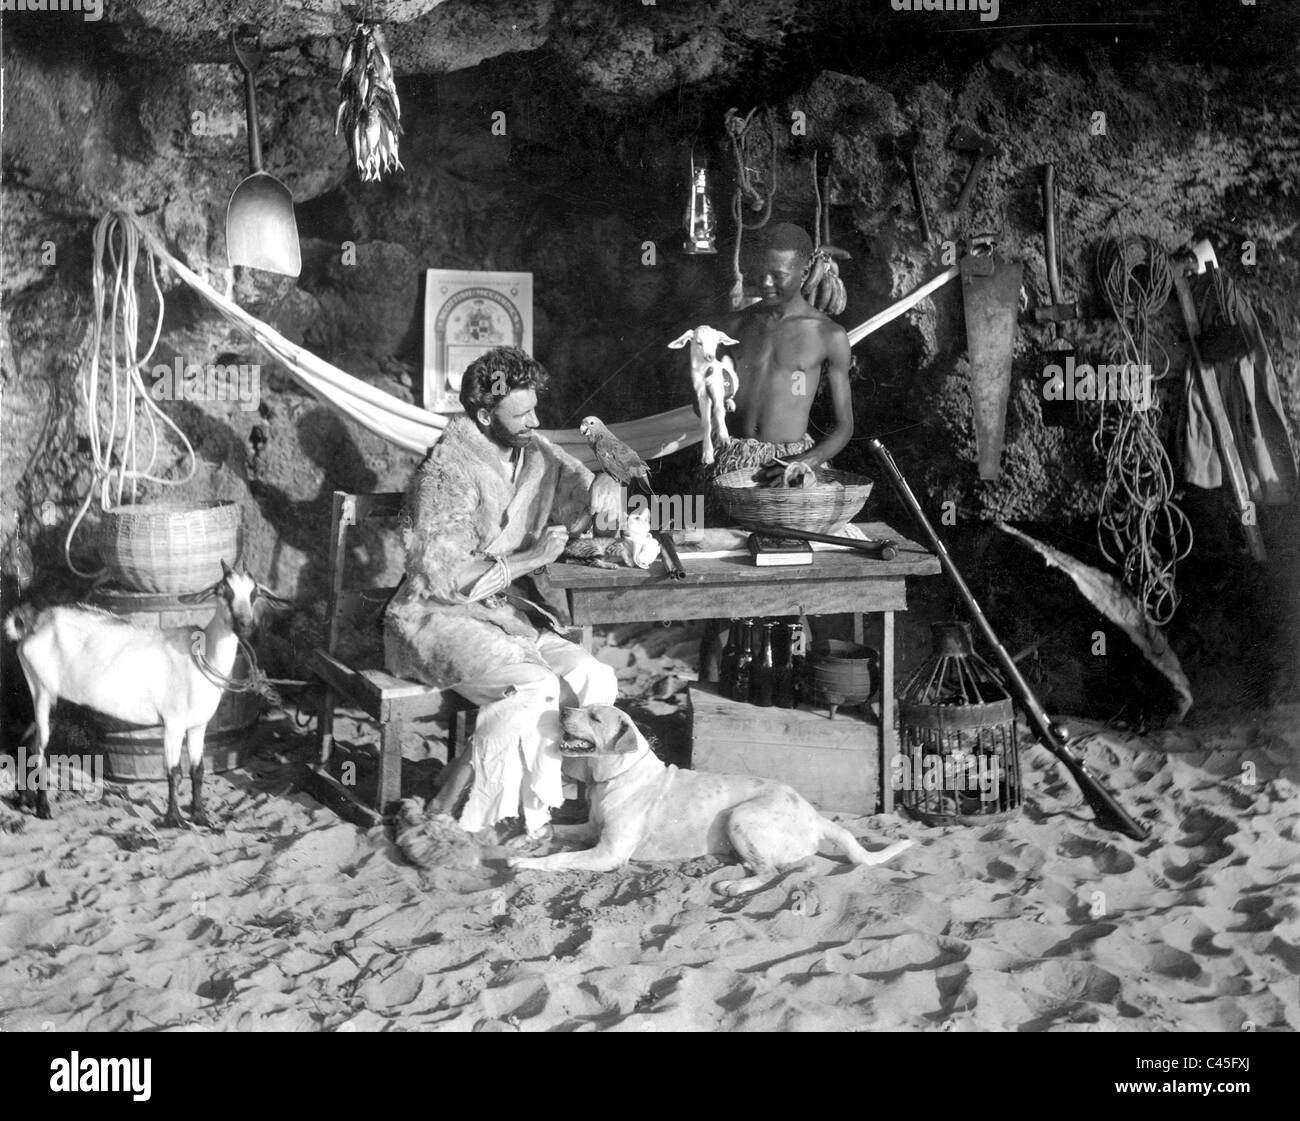 Robinson Crusoe Film Scene Stock Photos  Robinson Crusoe Film